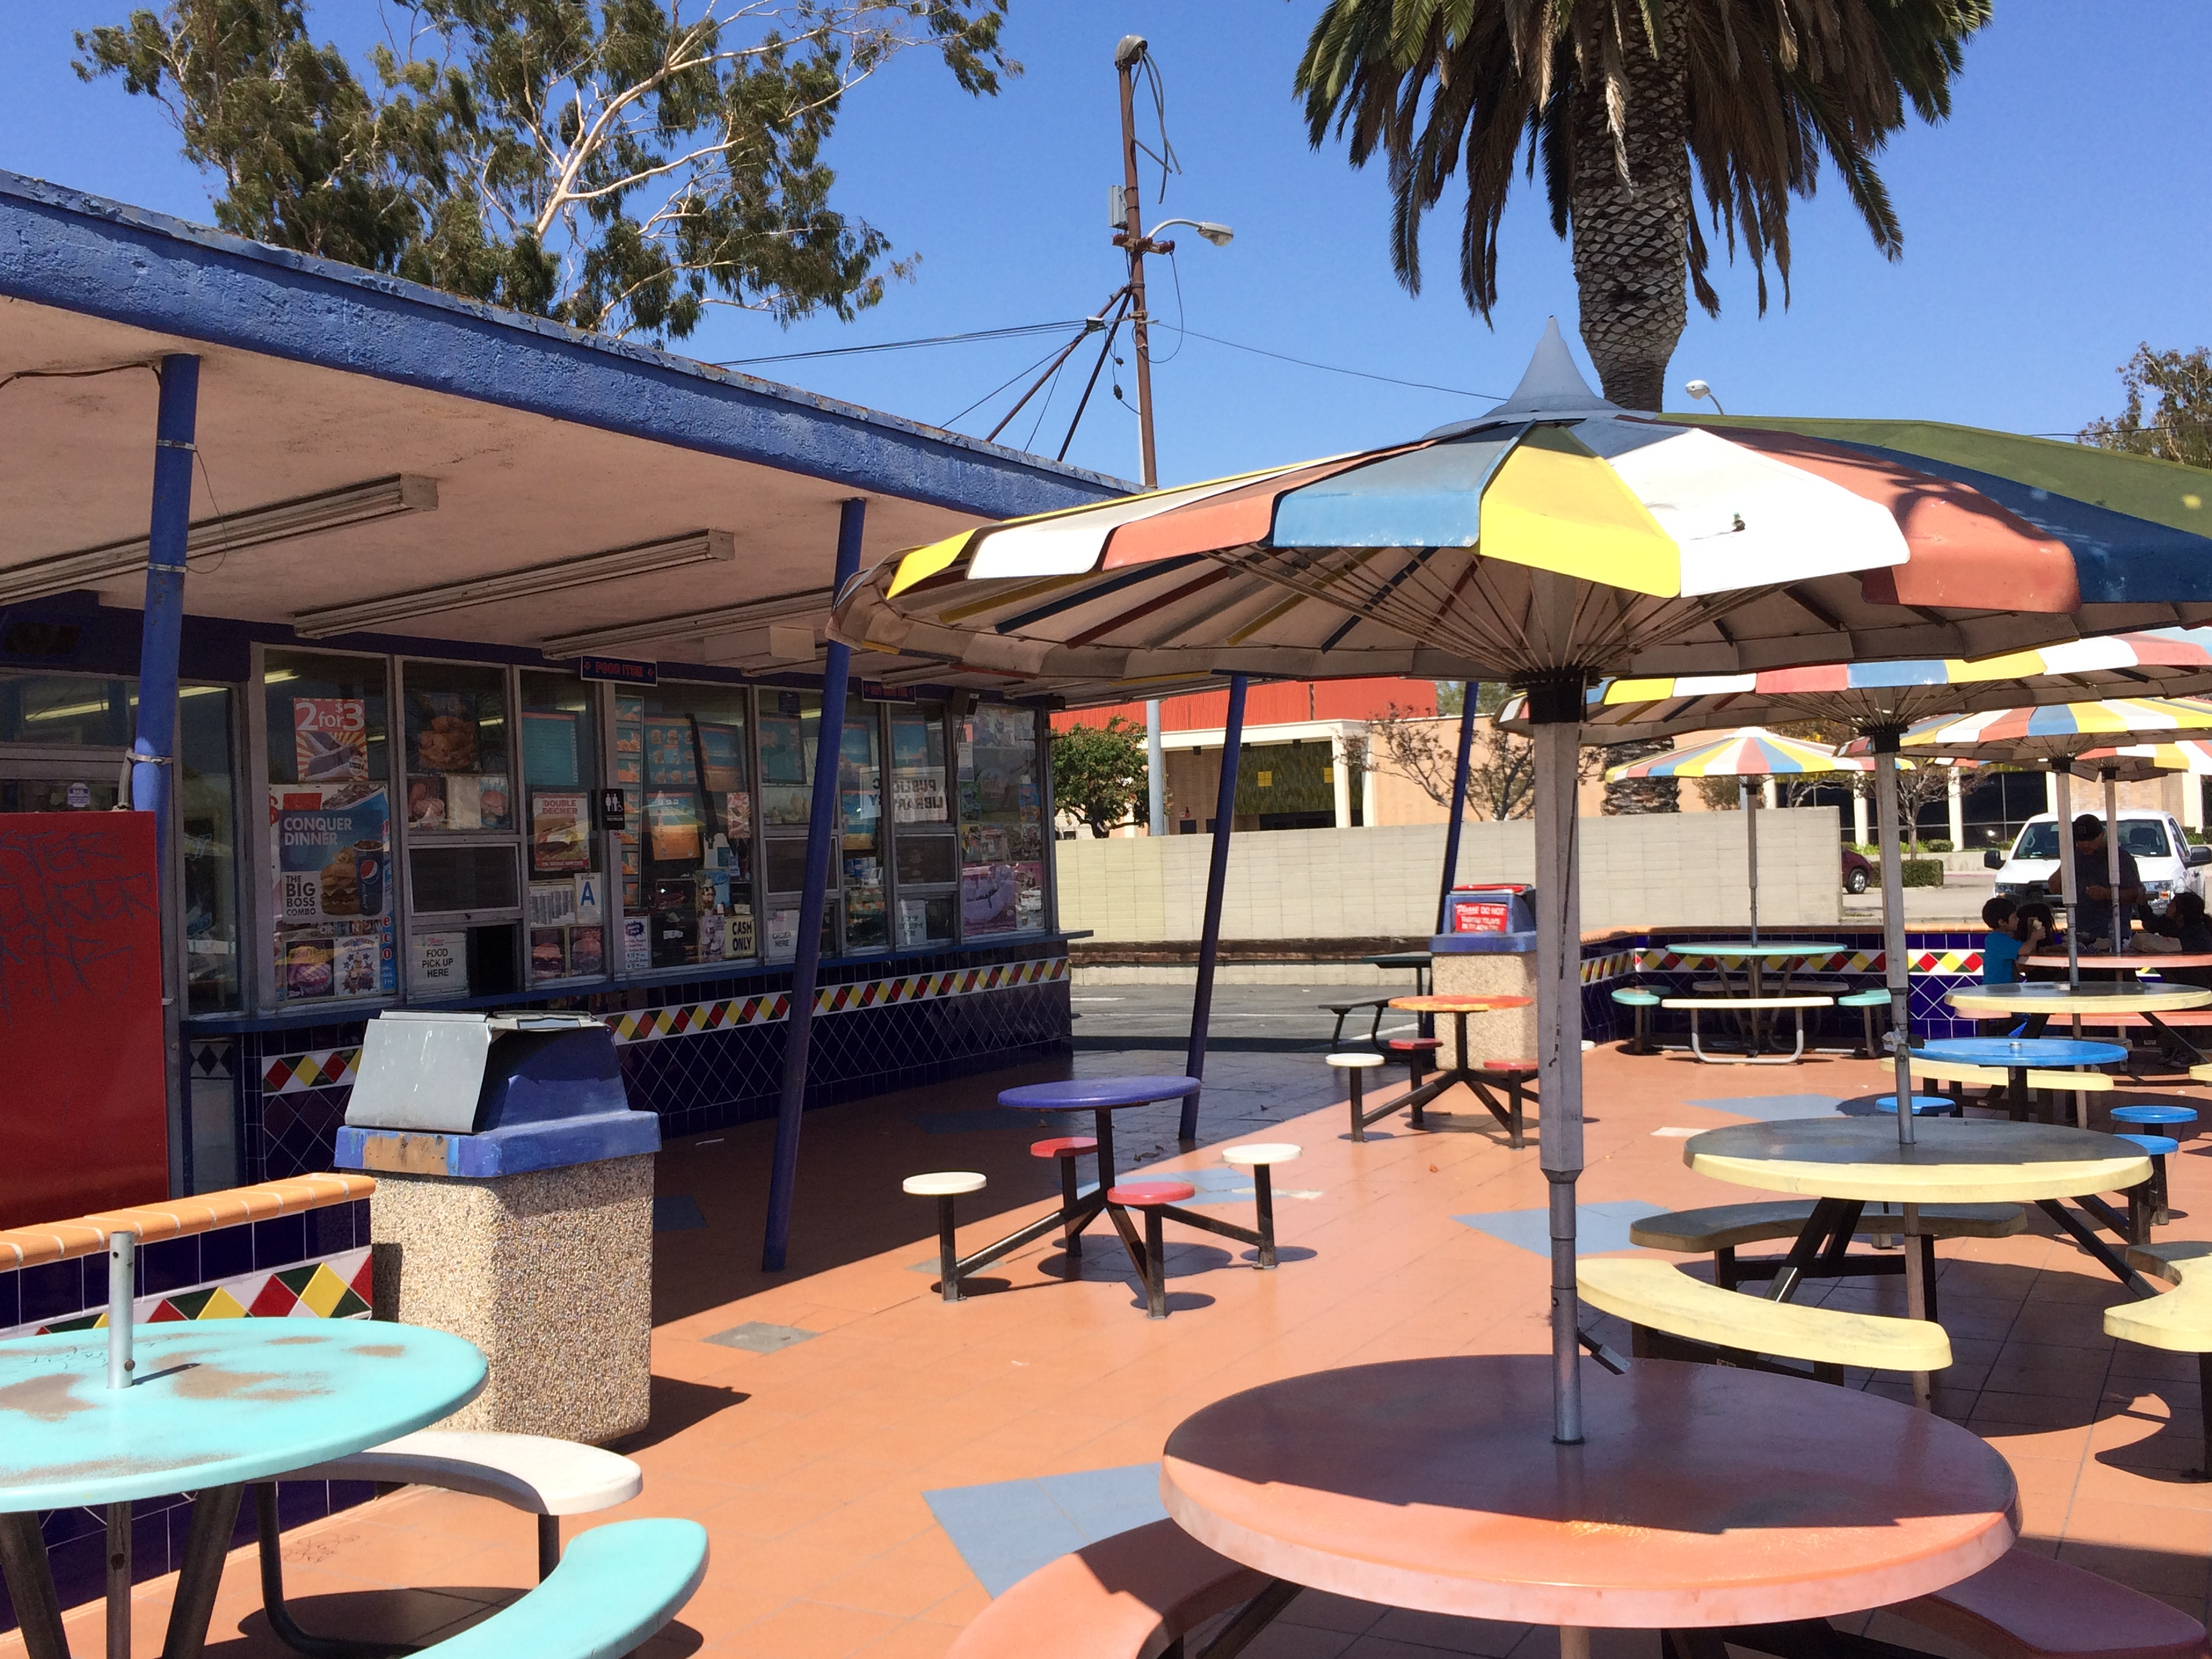 This Fosters Freeze on Carson Street in Carson was built in 1959. The eating area is a mid-century rainbow of tables. (photo by Nikki Kreuzer)